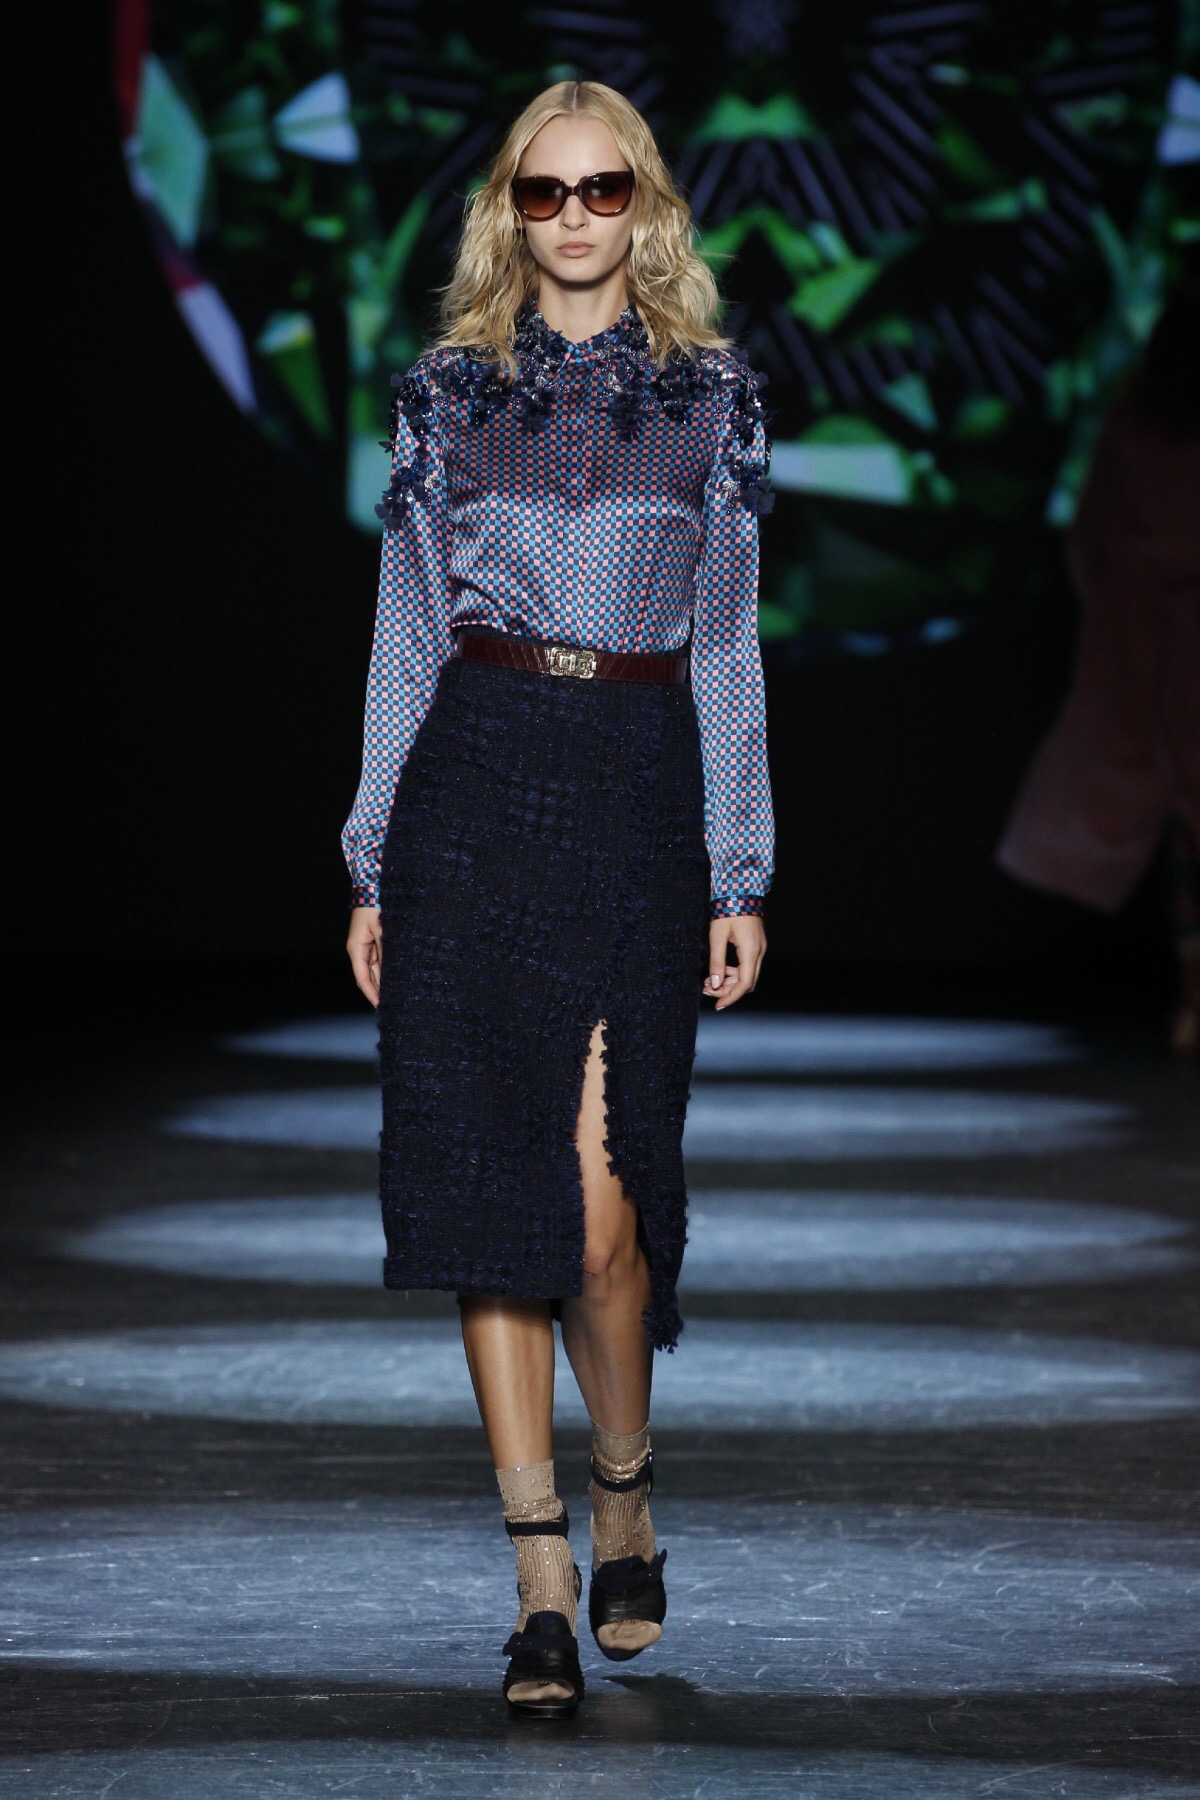 Emily Blanco shows an image of a checkered blouse and midi skirt from Monique Lhullier's NYFW show.